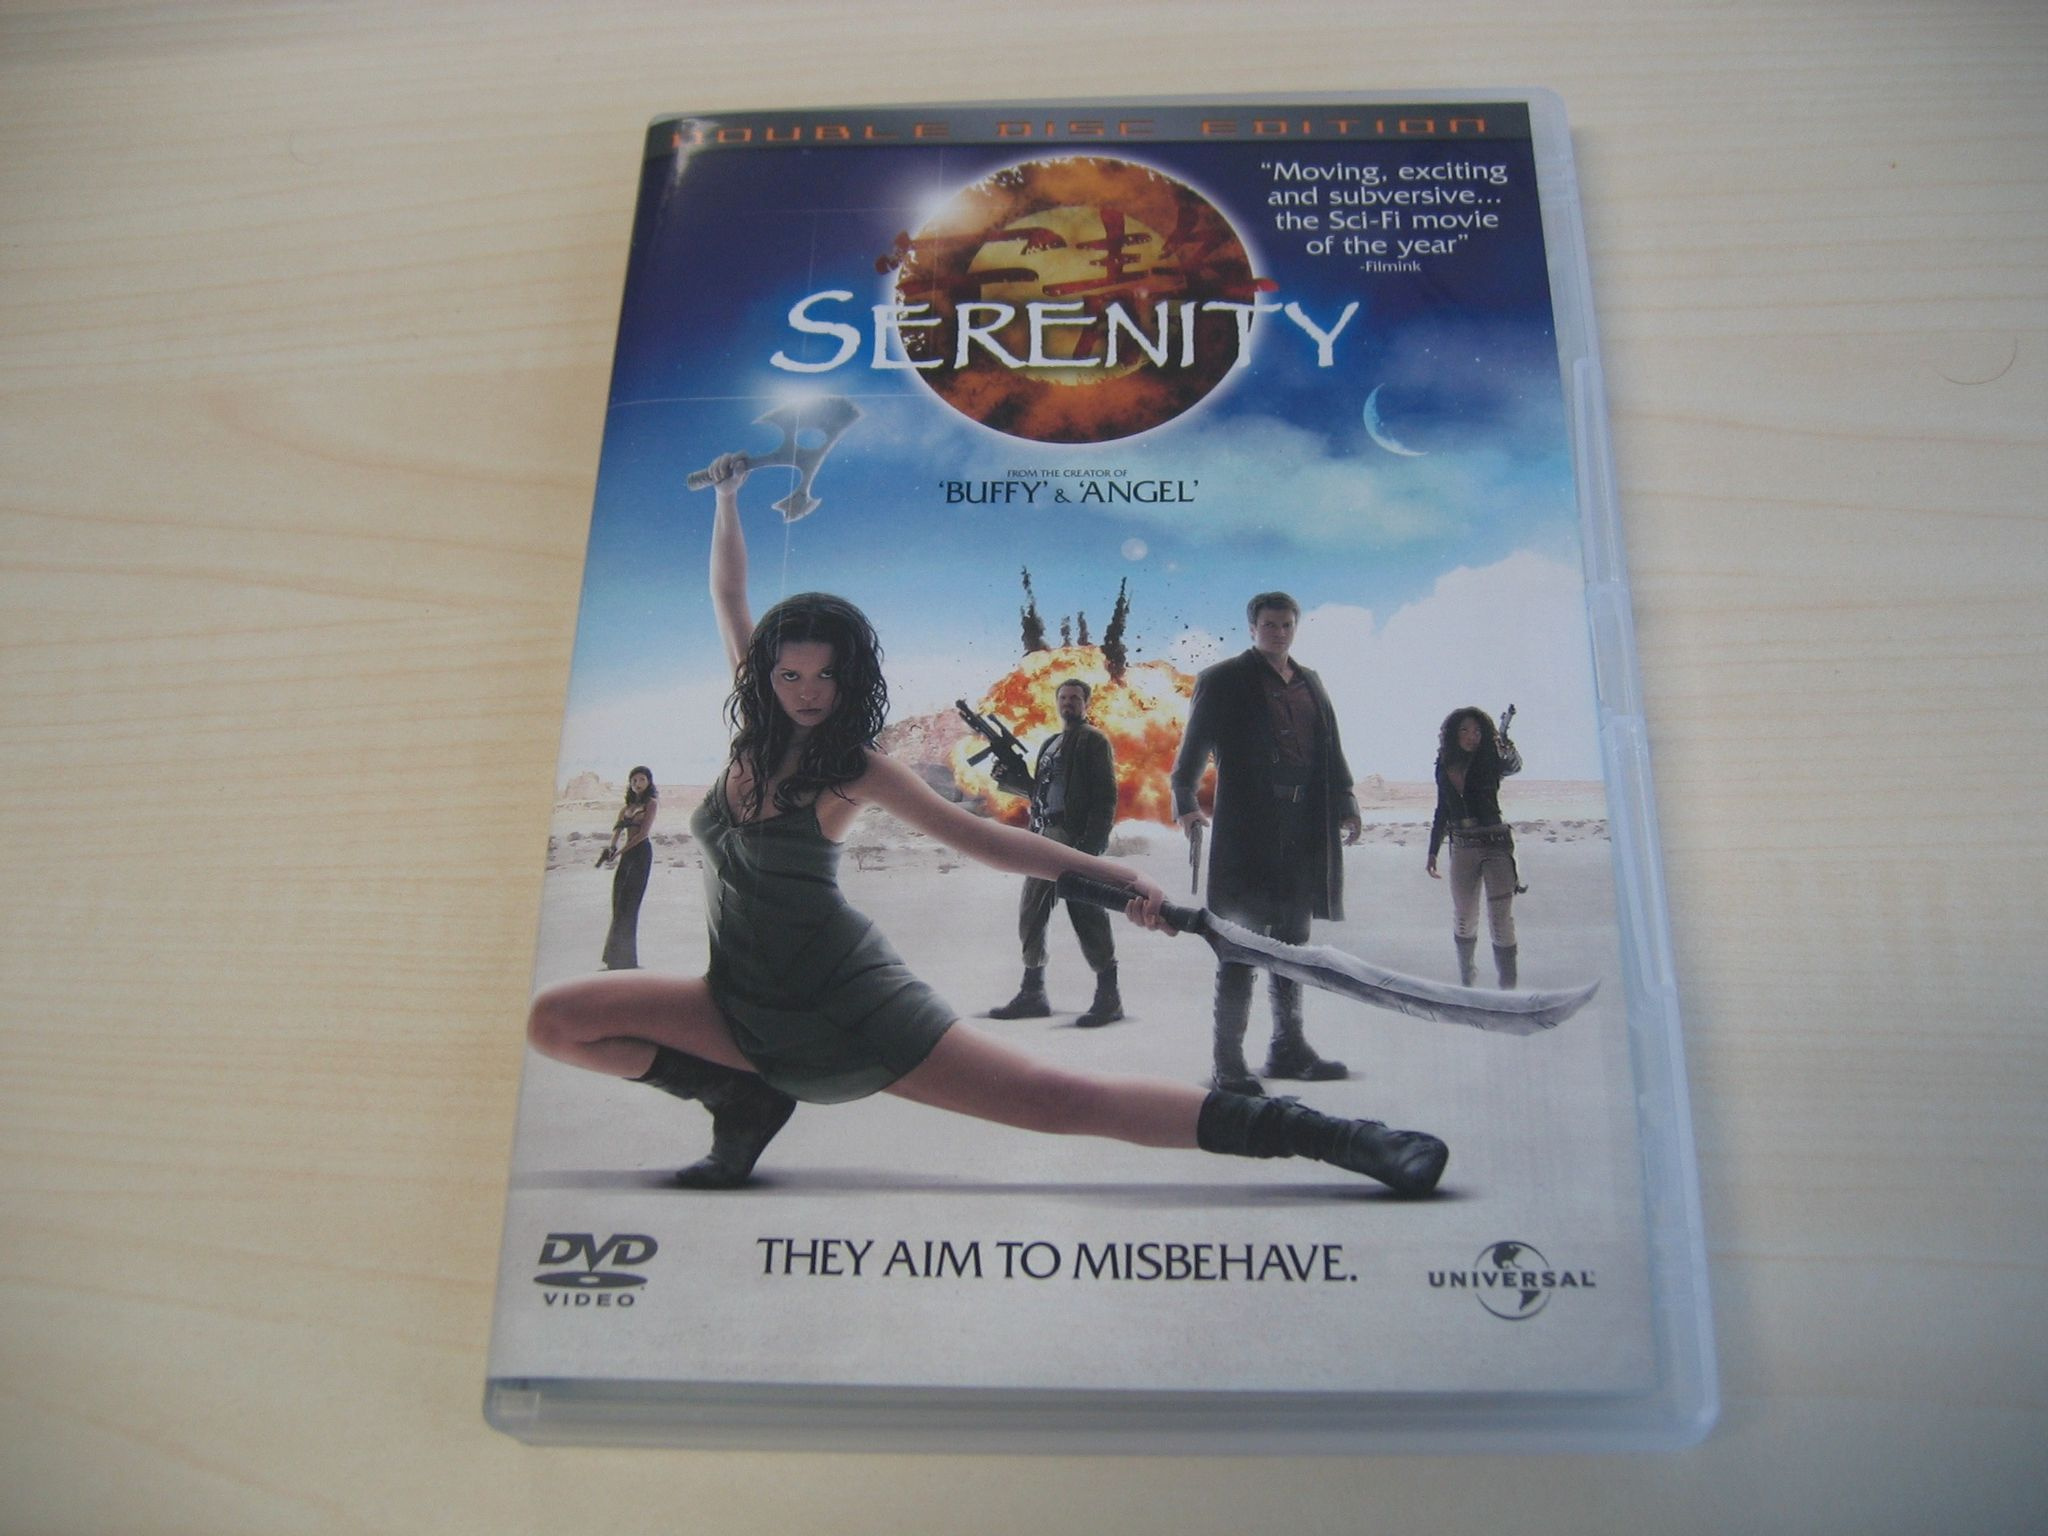 """A photo of the DVD case of the movie """"Serenity""""."""